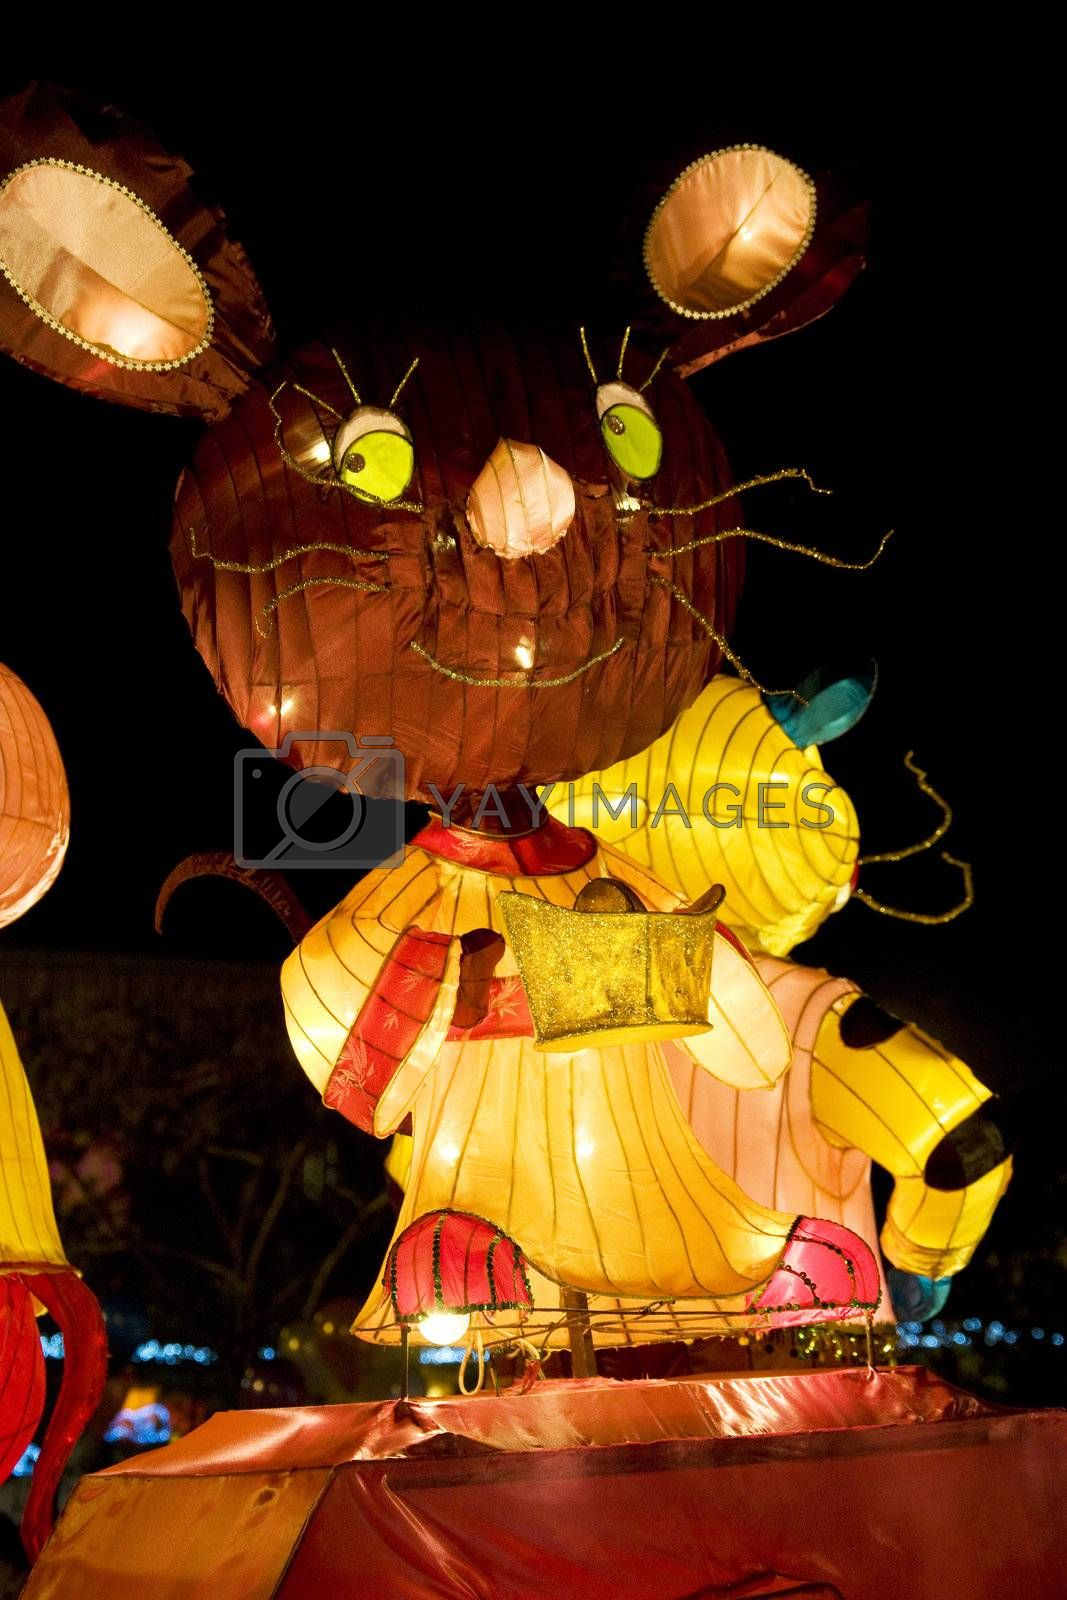 Image of a Chinese animal zodiac lantern depicting a rat seen at the Dong Zen Chinese Temple in Malaysia during the Chinese New Year celebration on 26th January 2009.